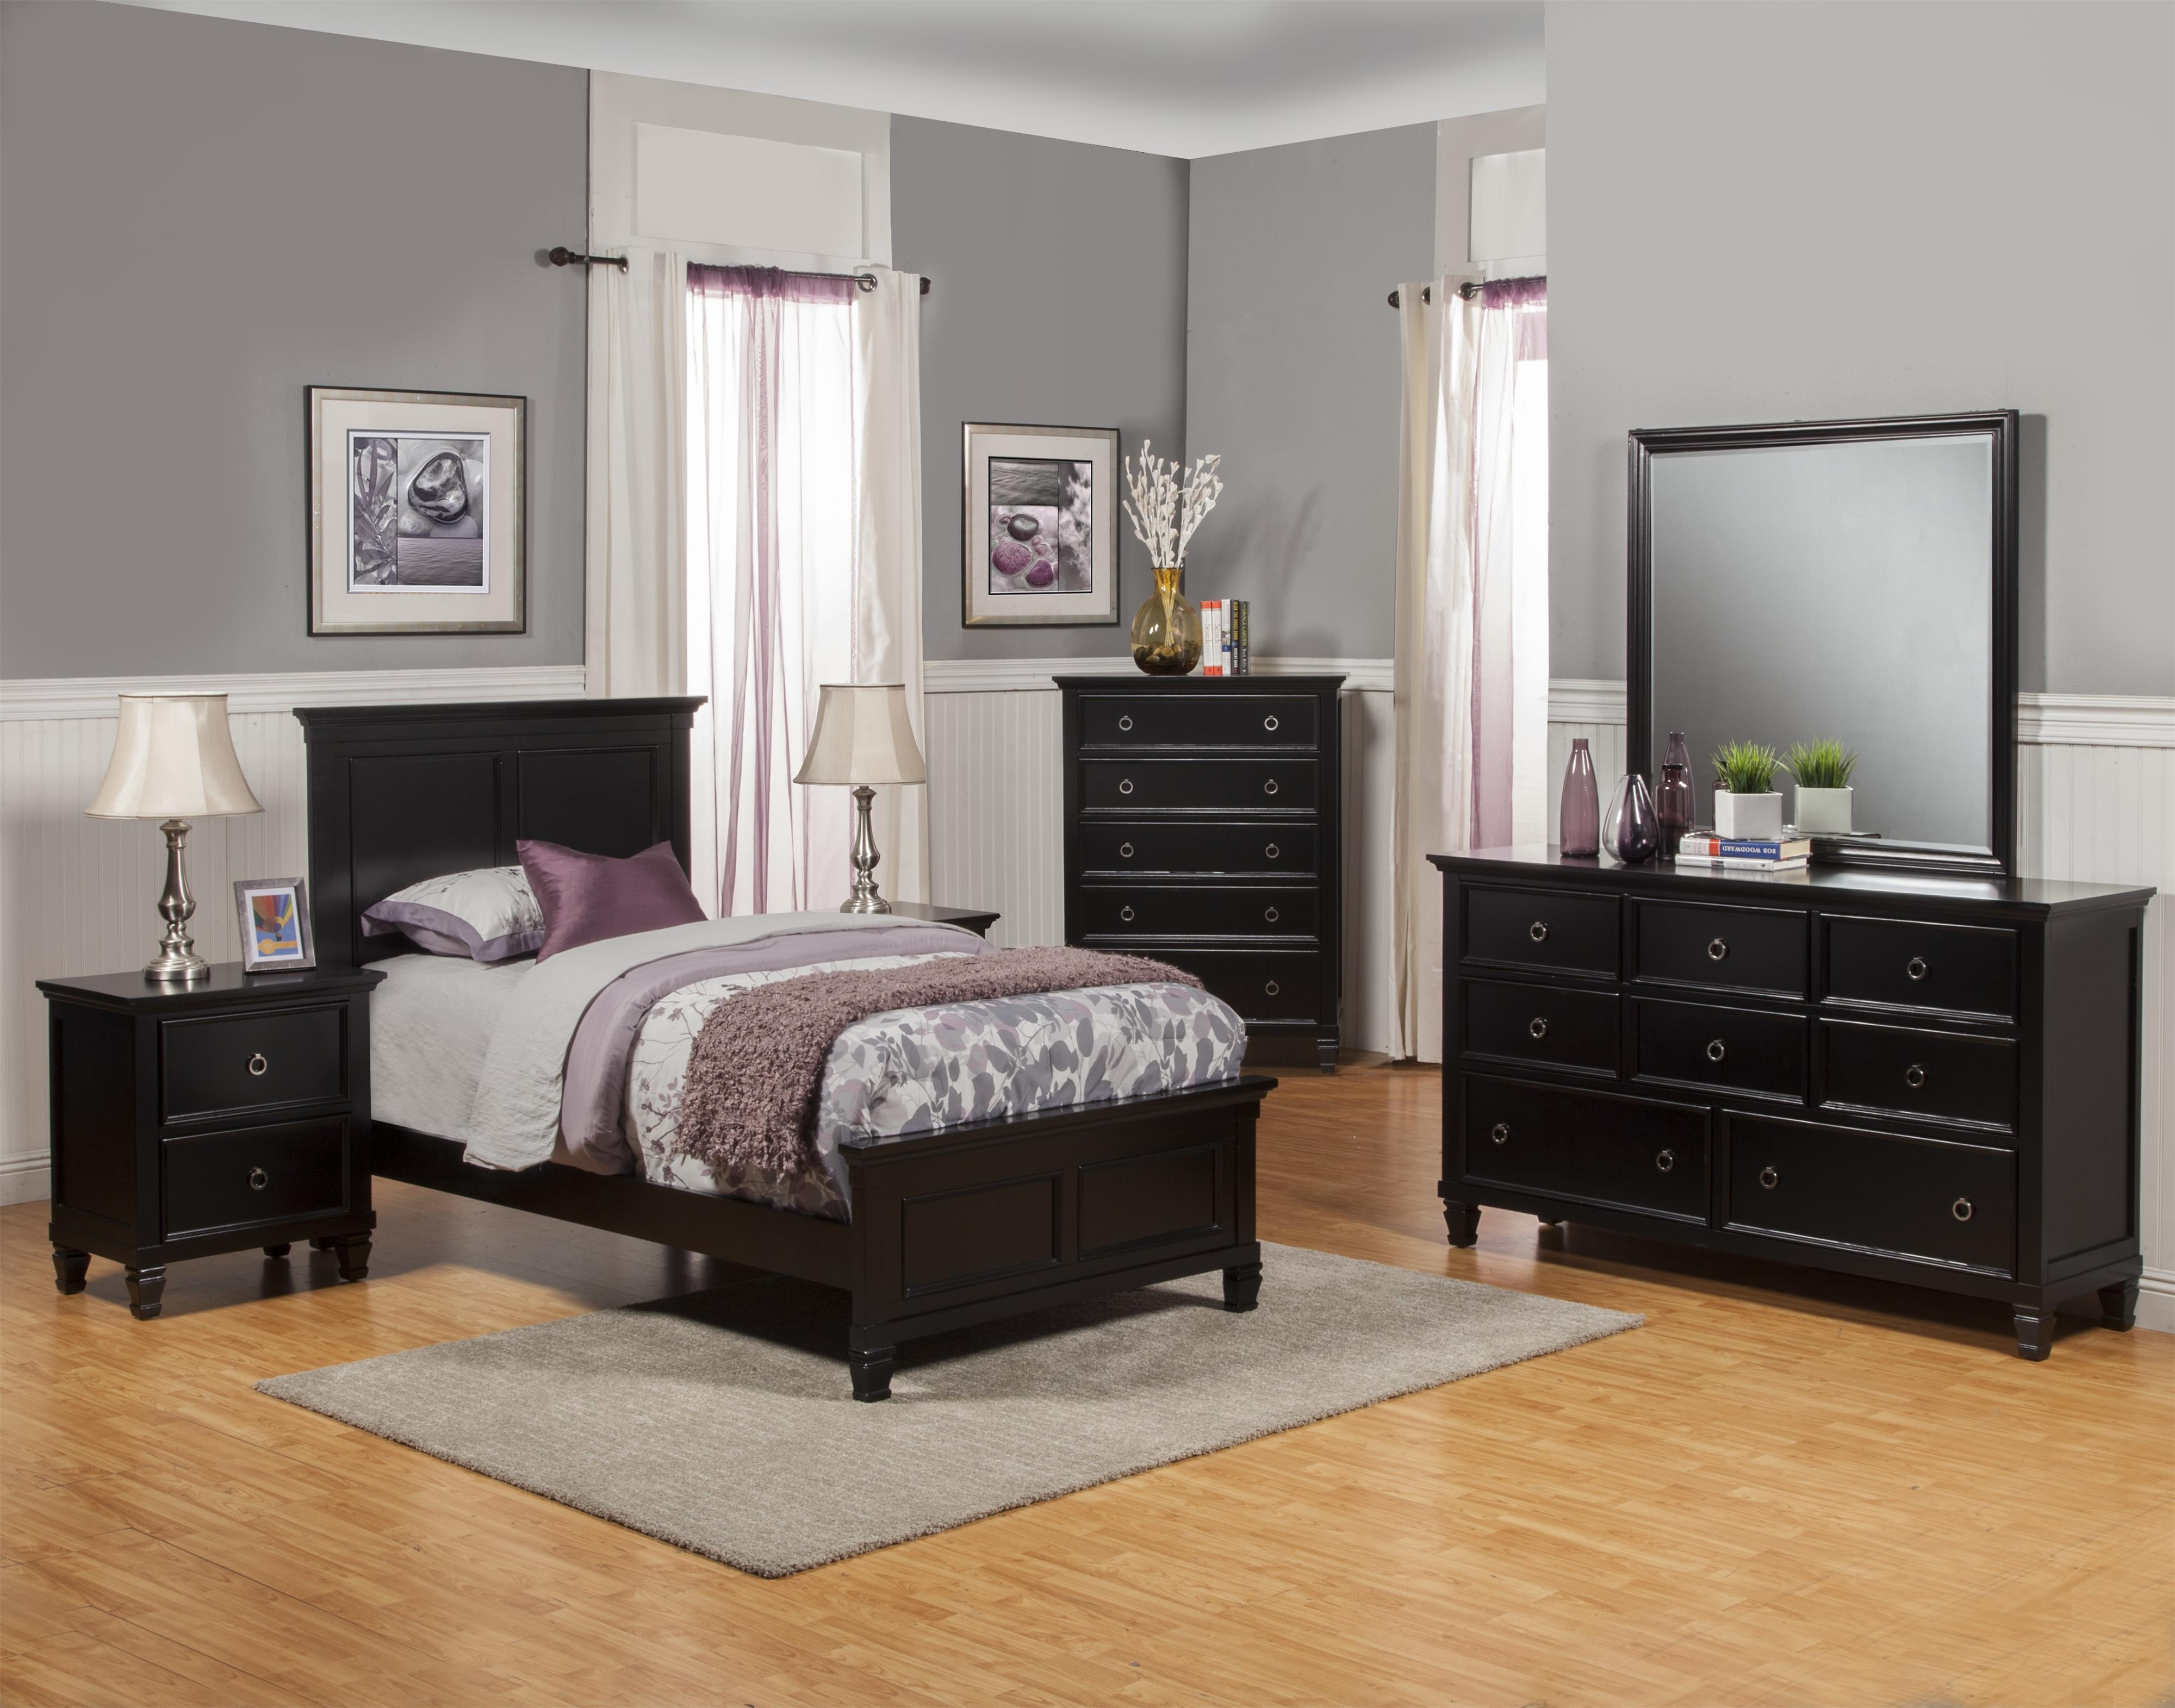 Tamarack Twin Bedroom Group  by New Classic at Beck's Furniture